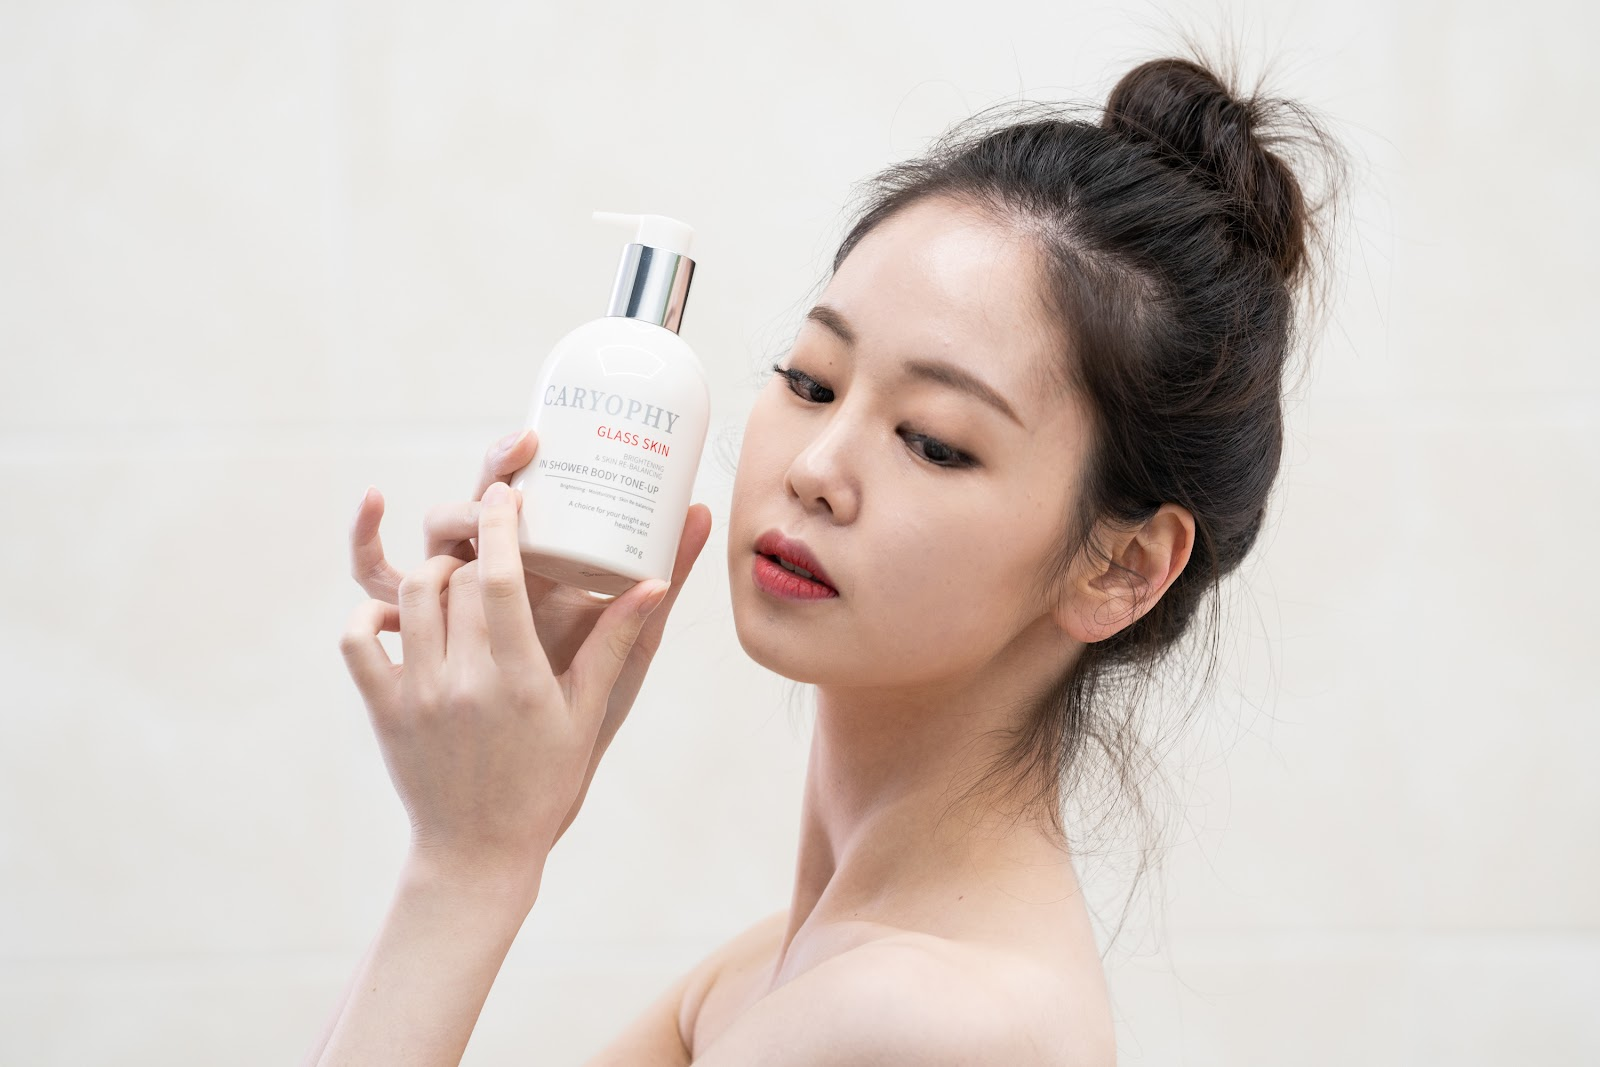 Caryophy 3 in 1 Glass skin in Shower Body Tone up